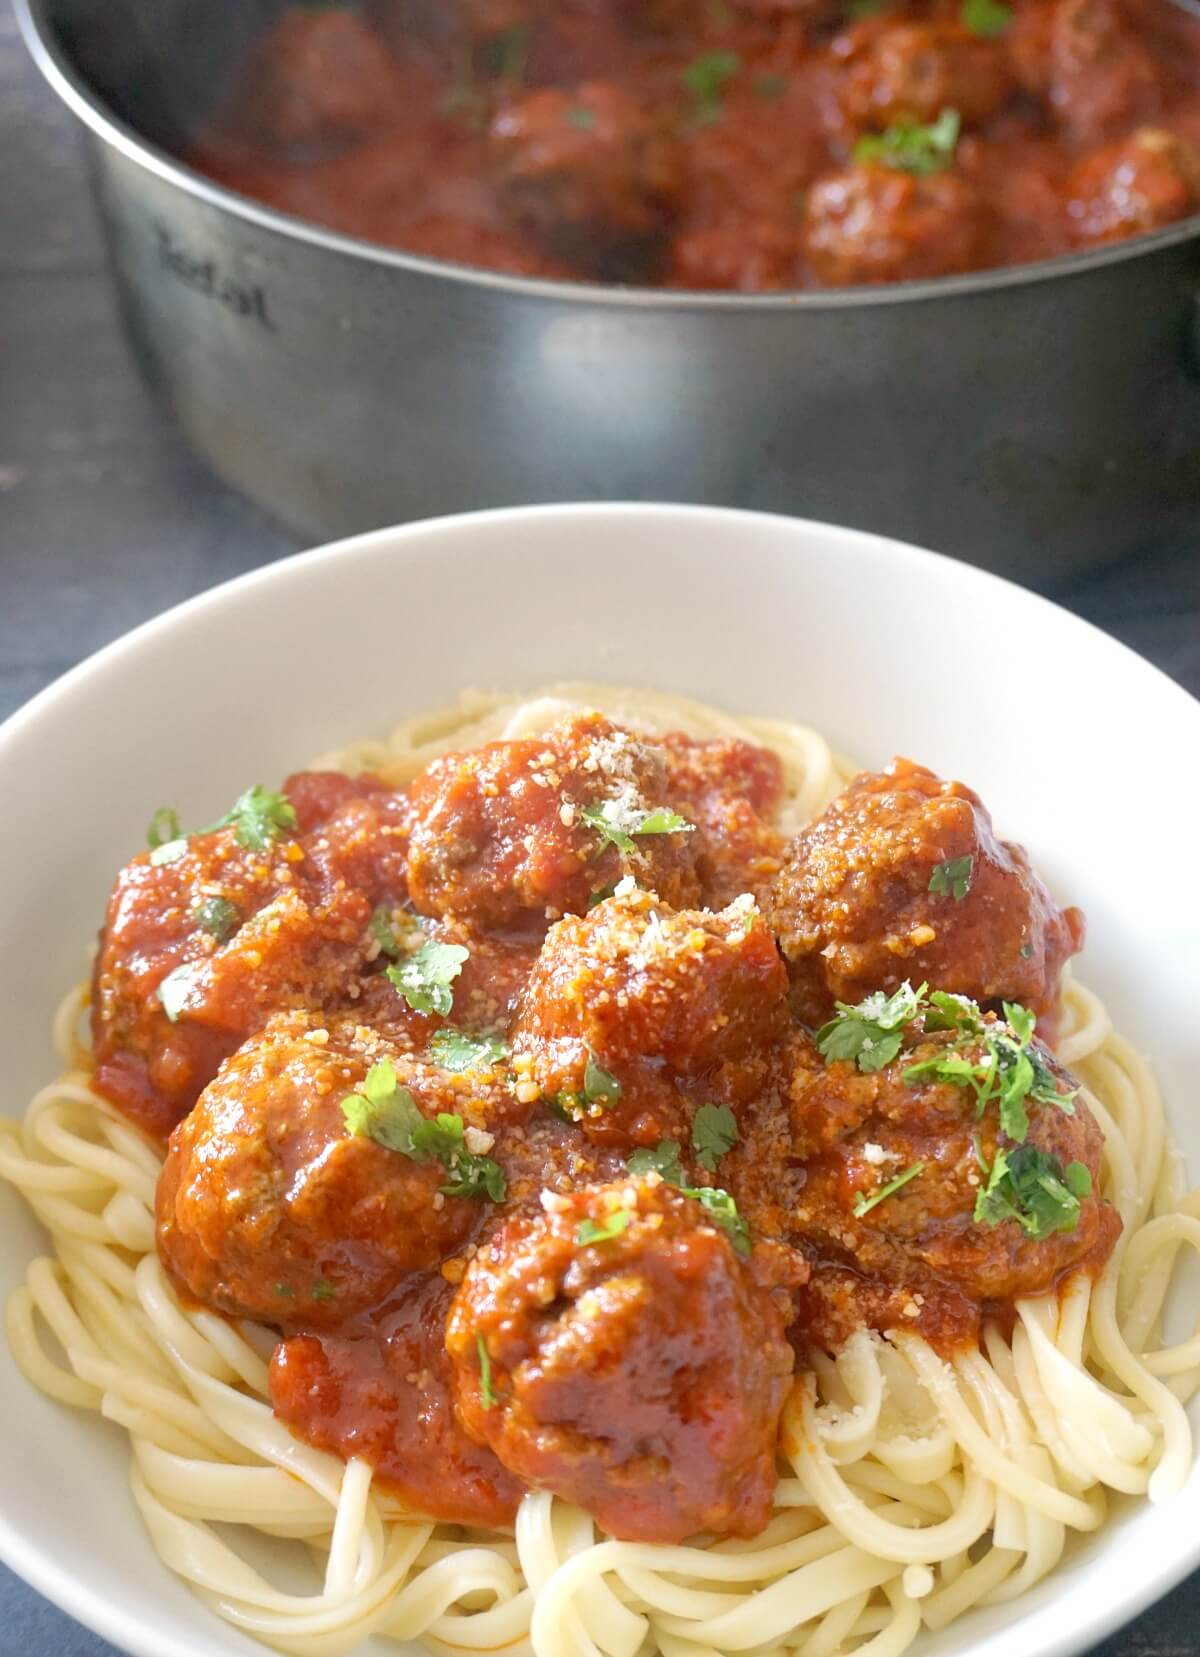 A while bowl with spaghetti topped with meatballs in tomato sauce